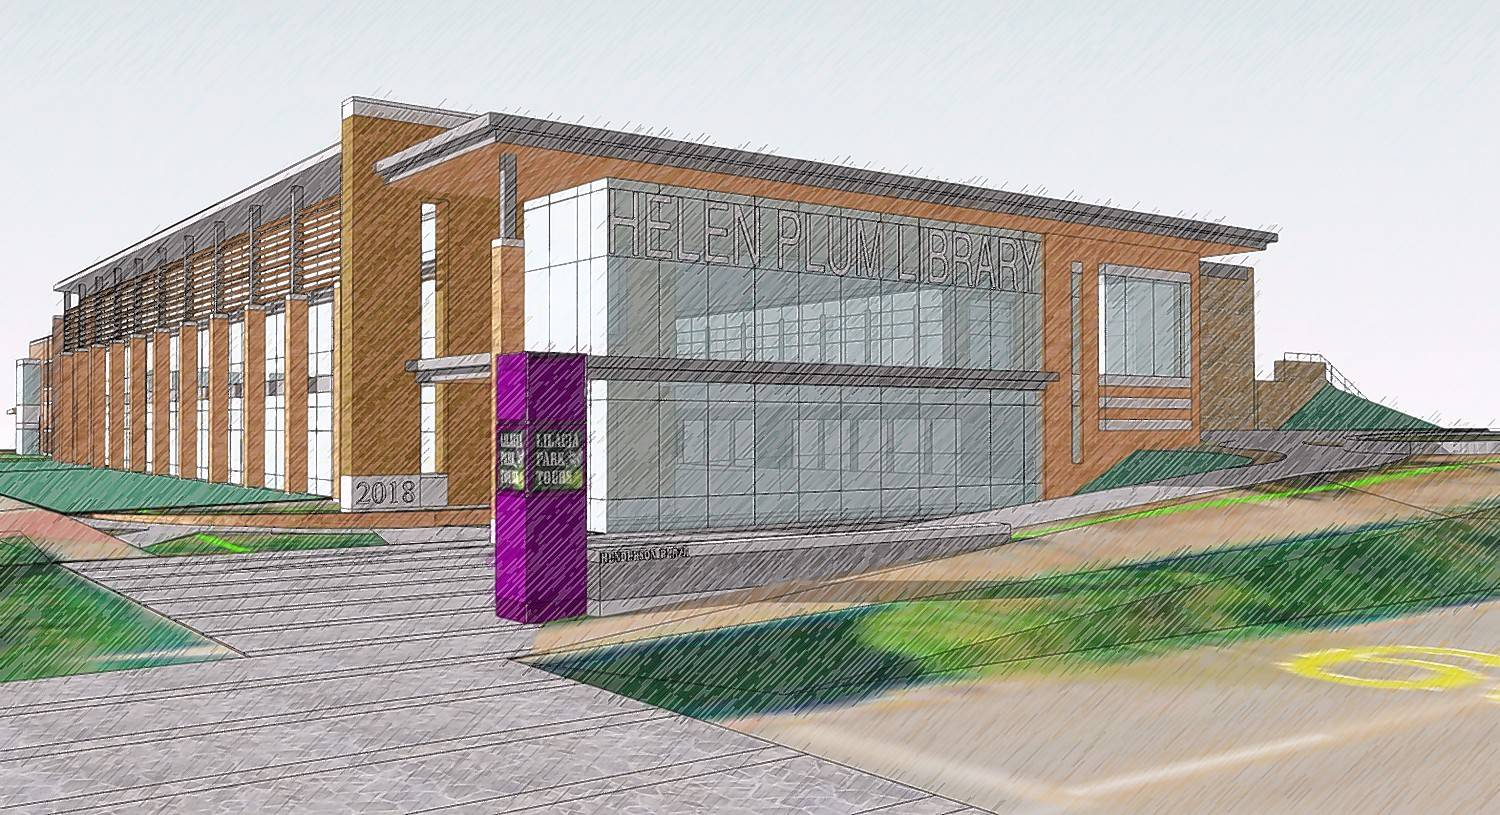 A new $22.3 million Helen Plum Memorial Library is one of three improvements for which DuPage County voters in various taxing bodies approved property tax increases during Tuesday's election. Voters also said OK to tax increases for the Bloomingdale Park District and Salt Creek Elementary District 48.